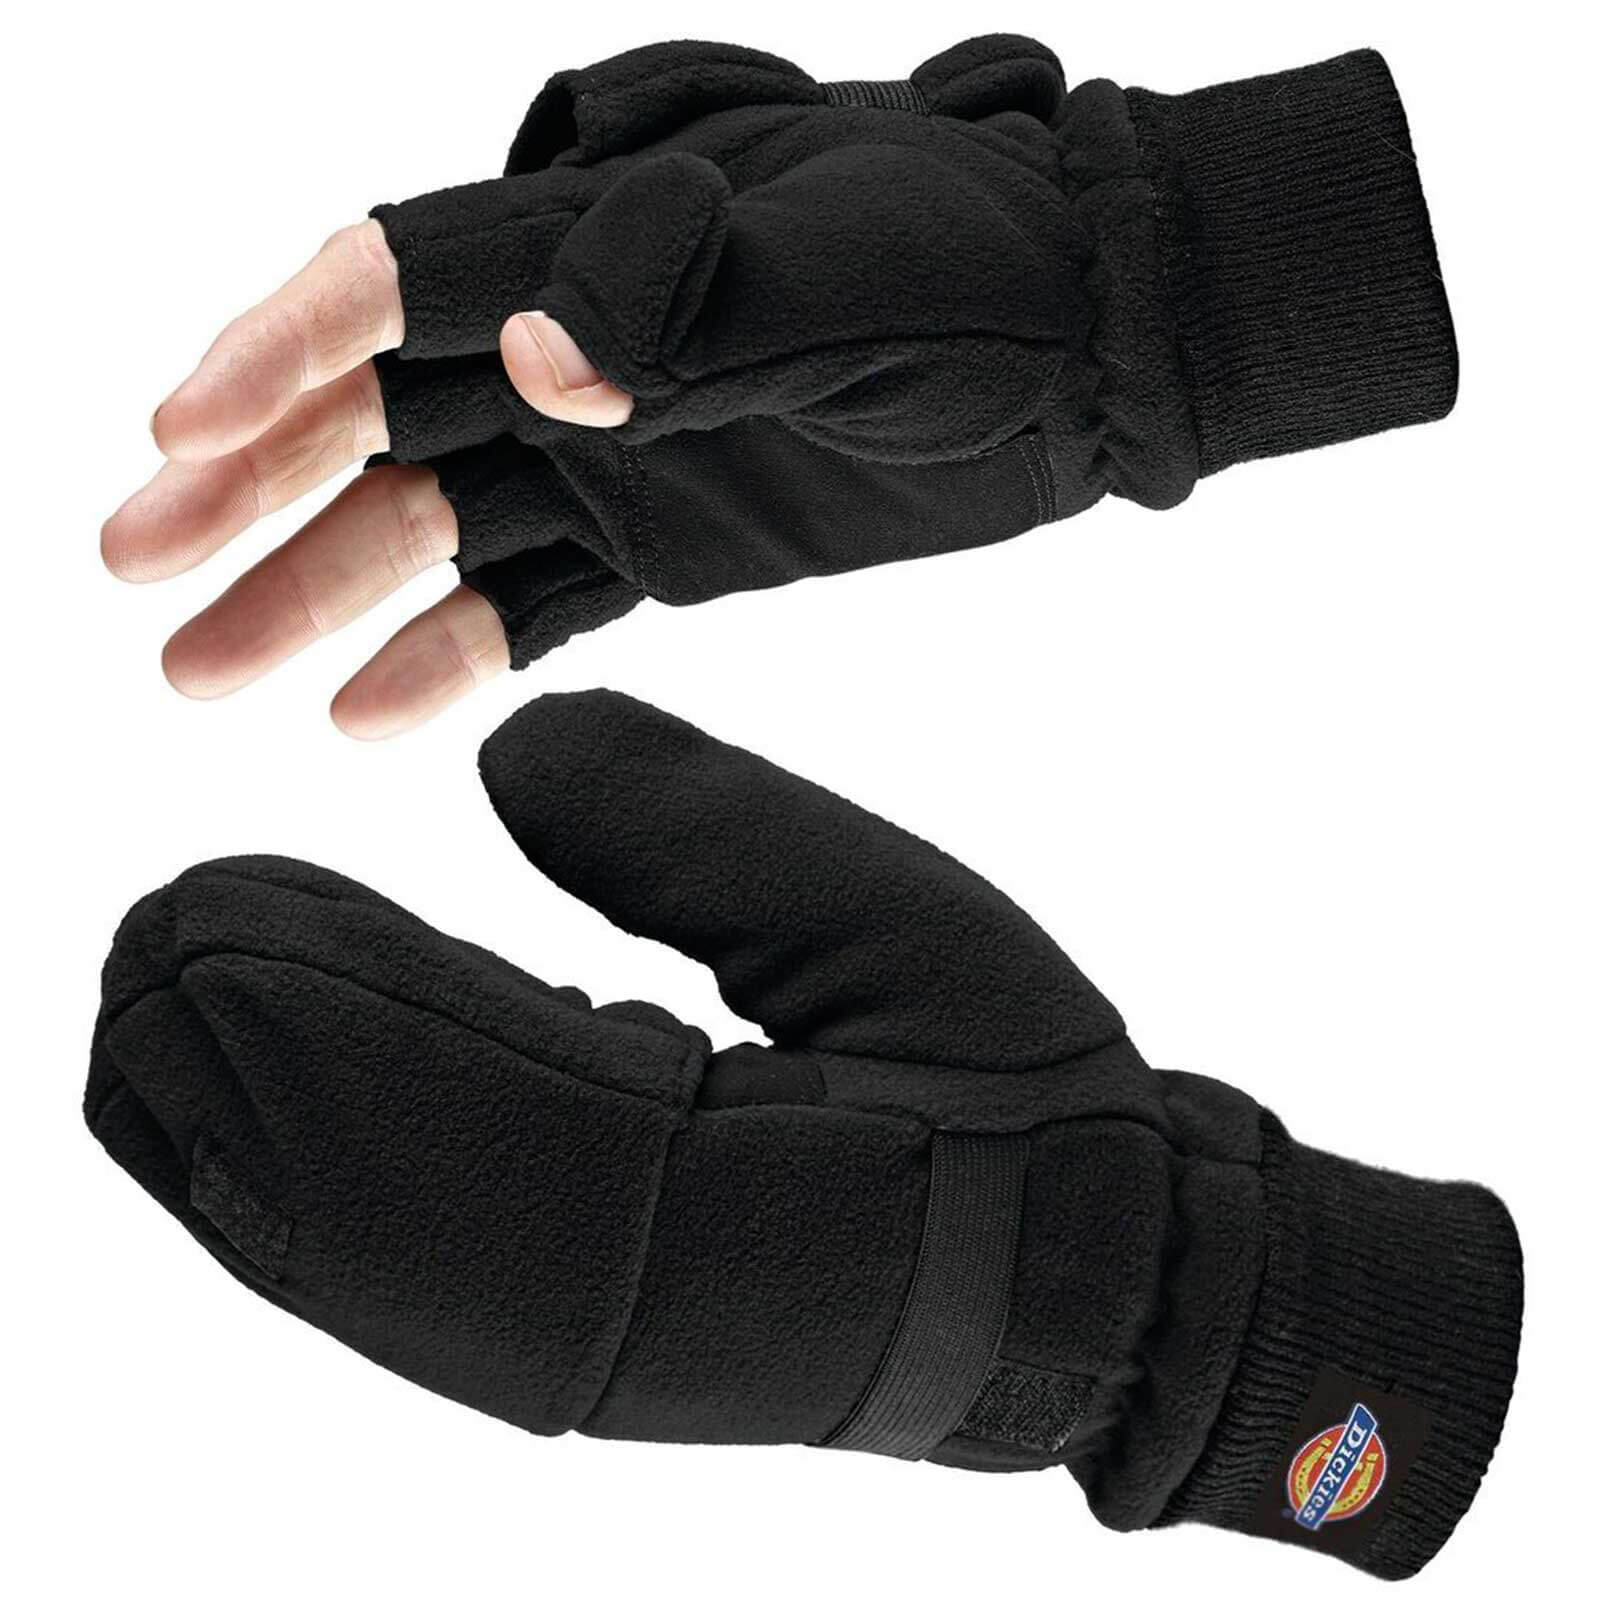 Image of Dickies Thinsulate Fingerless Gloves with Mitten Cover Black One Size